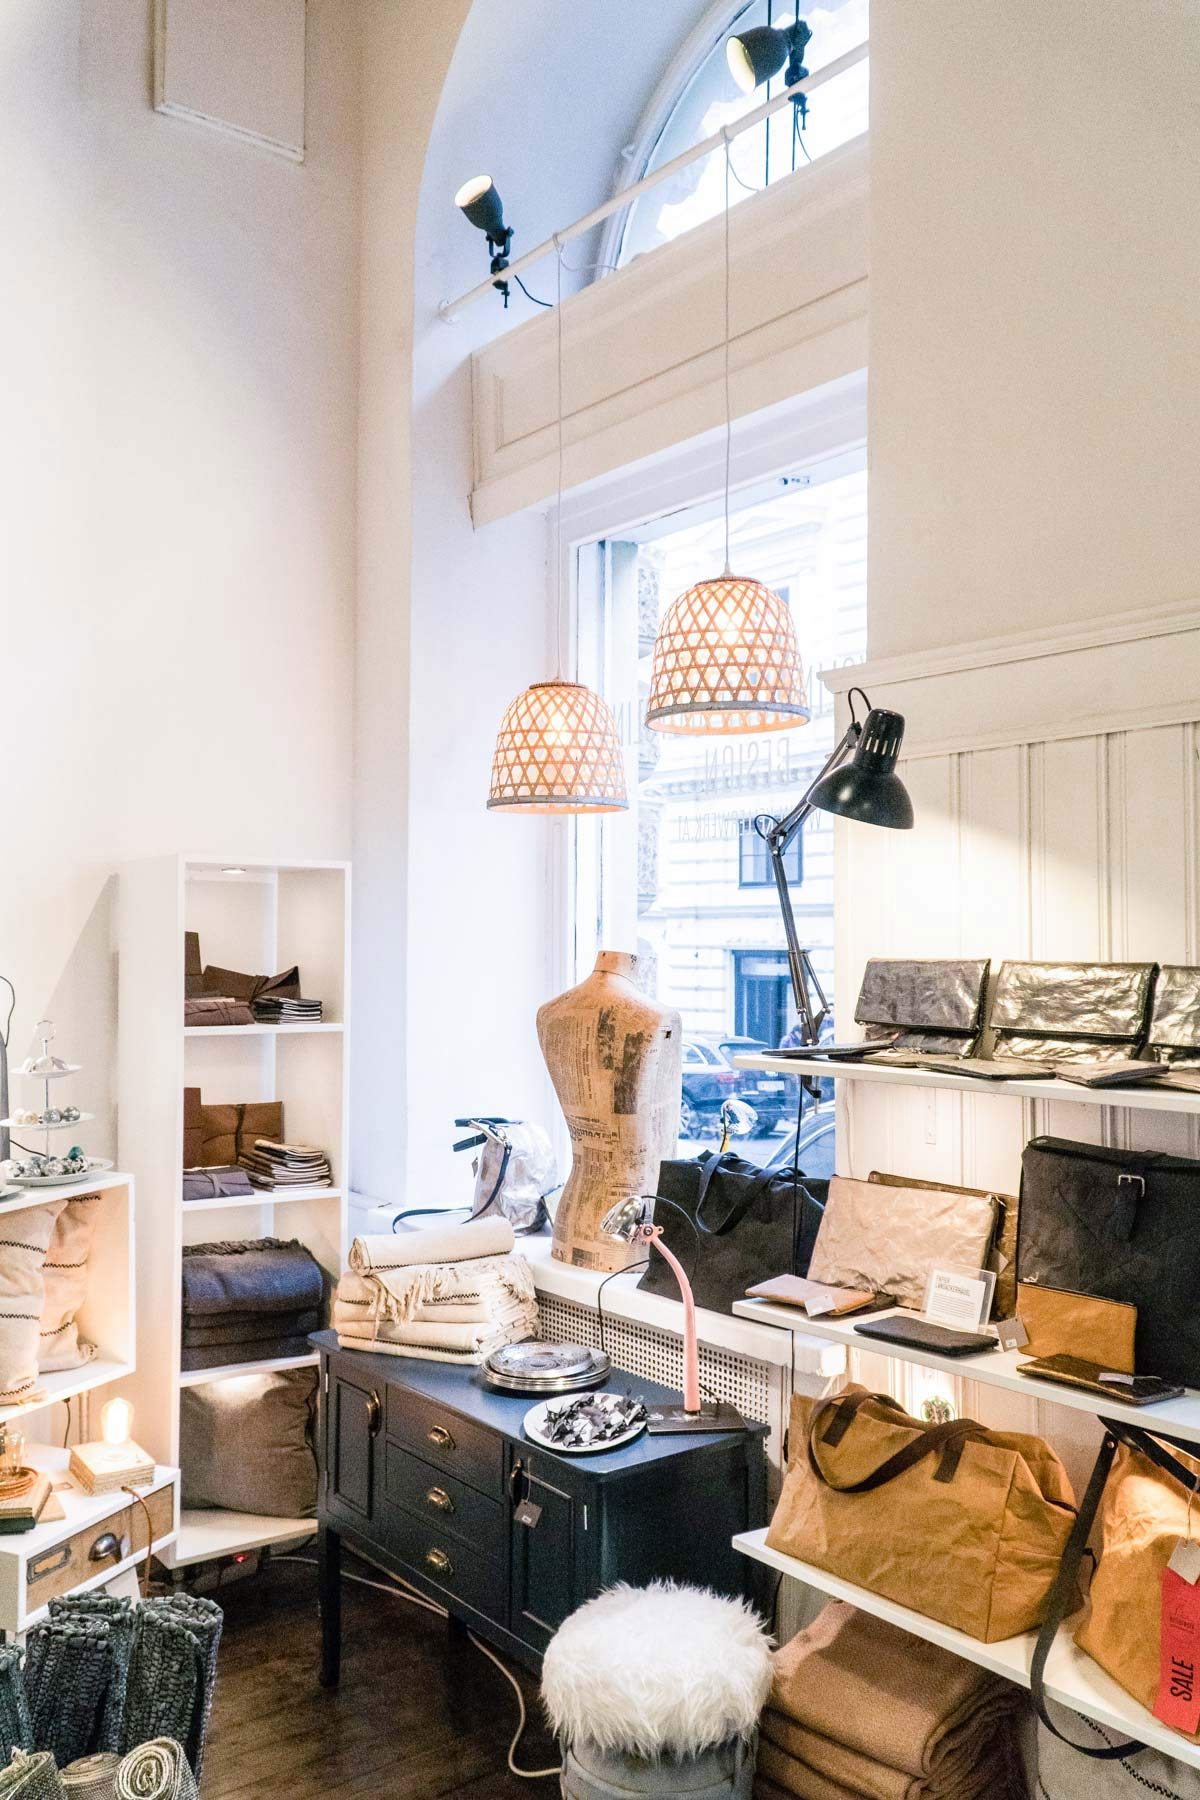 Interieur Laden in Wien